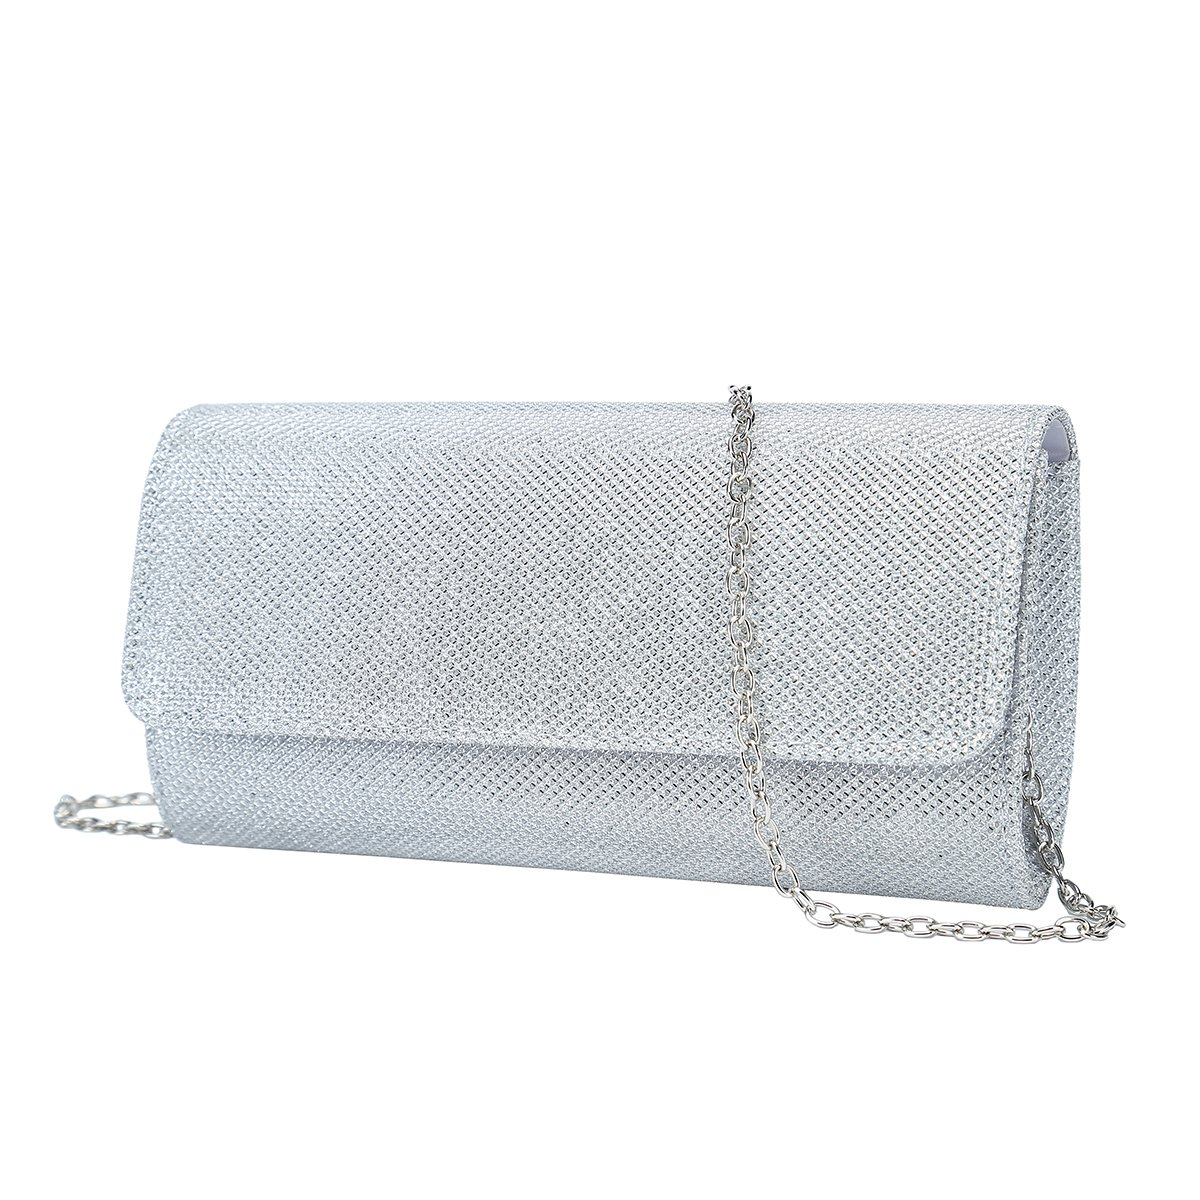 Charming Tailor Clutch Evening Bag on Chain Glitter Fashion Purses and Handbags for Women (Silver)